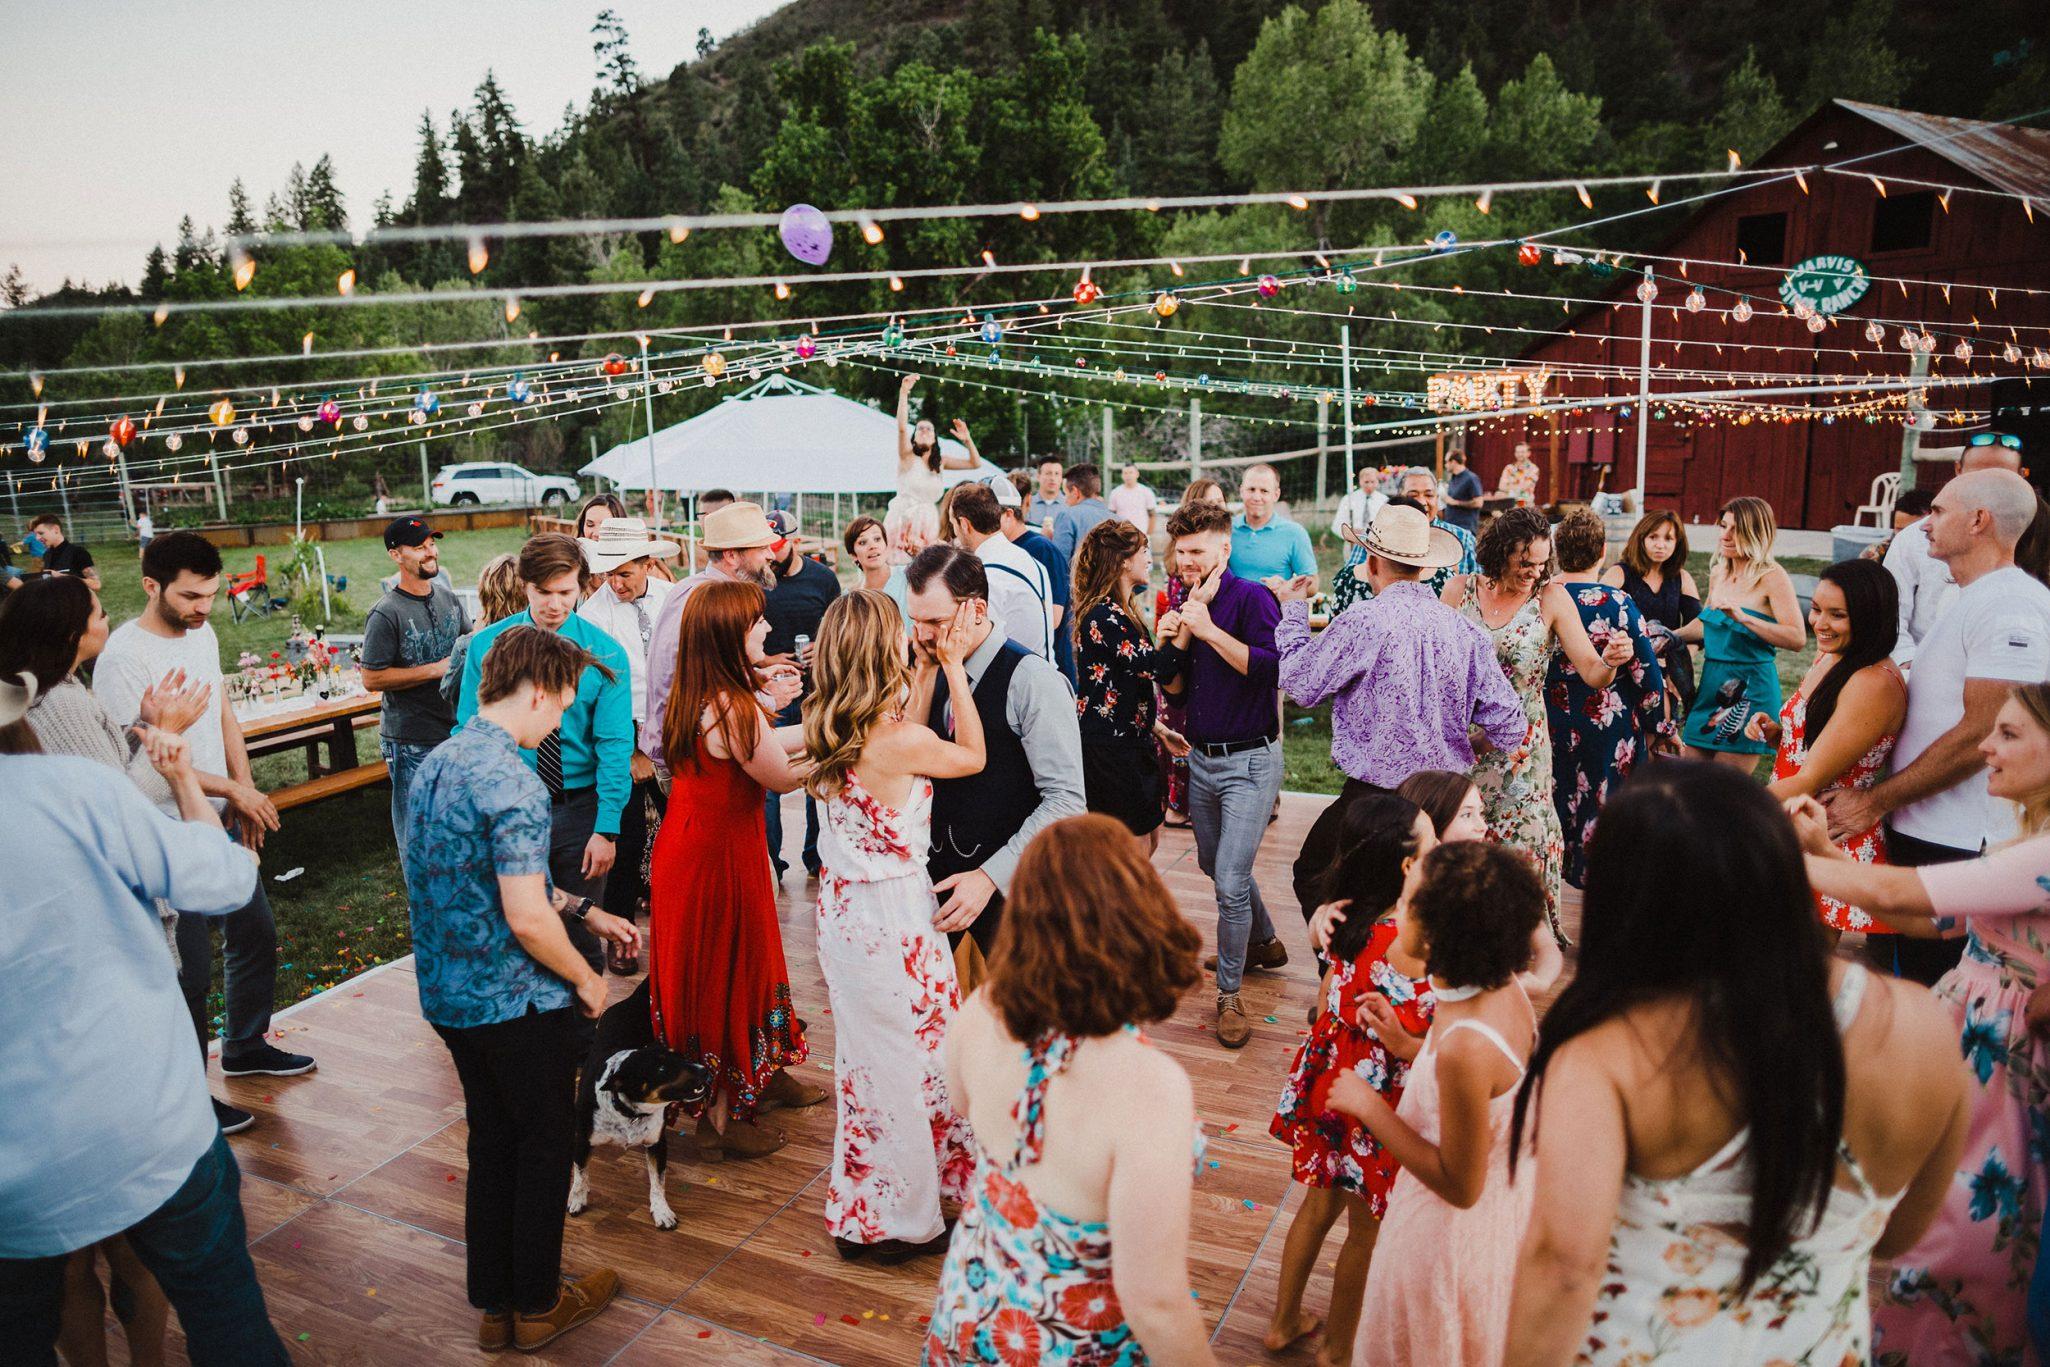 A Whimsical & Joyous Wedding Day in Durango, Colorado